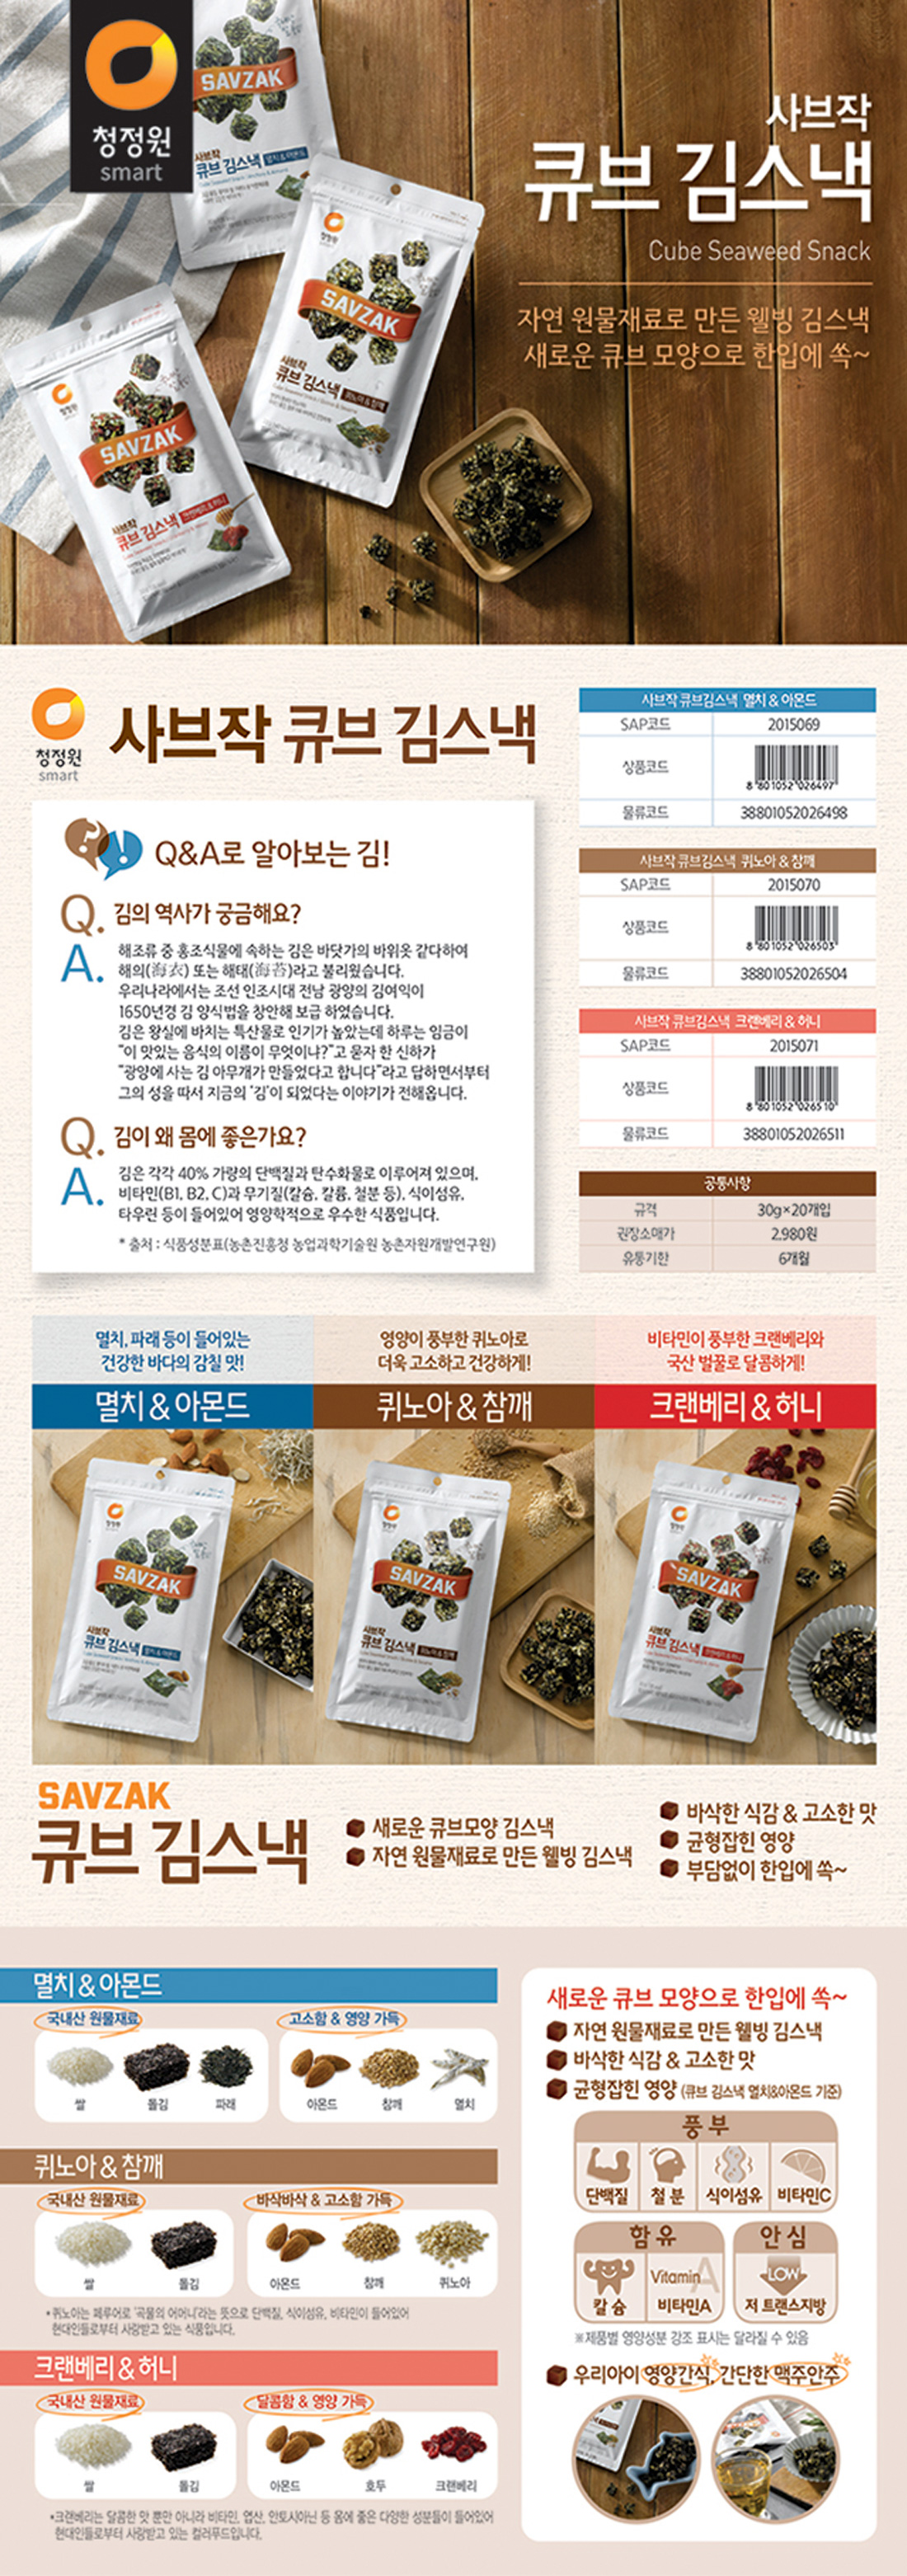 [ chungjungone ] CUBE SEAWEED SNACK ANCHOVY & AMOND 30g X 5